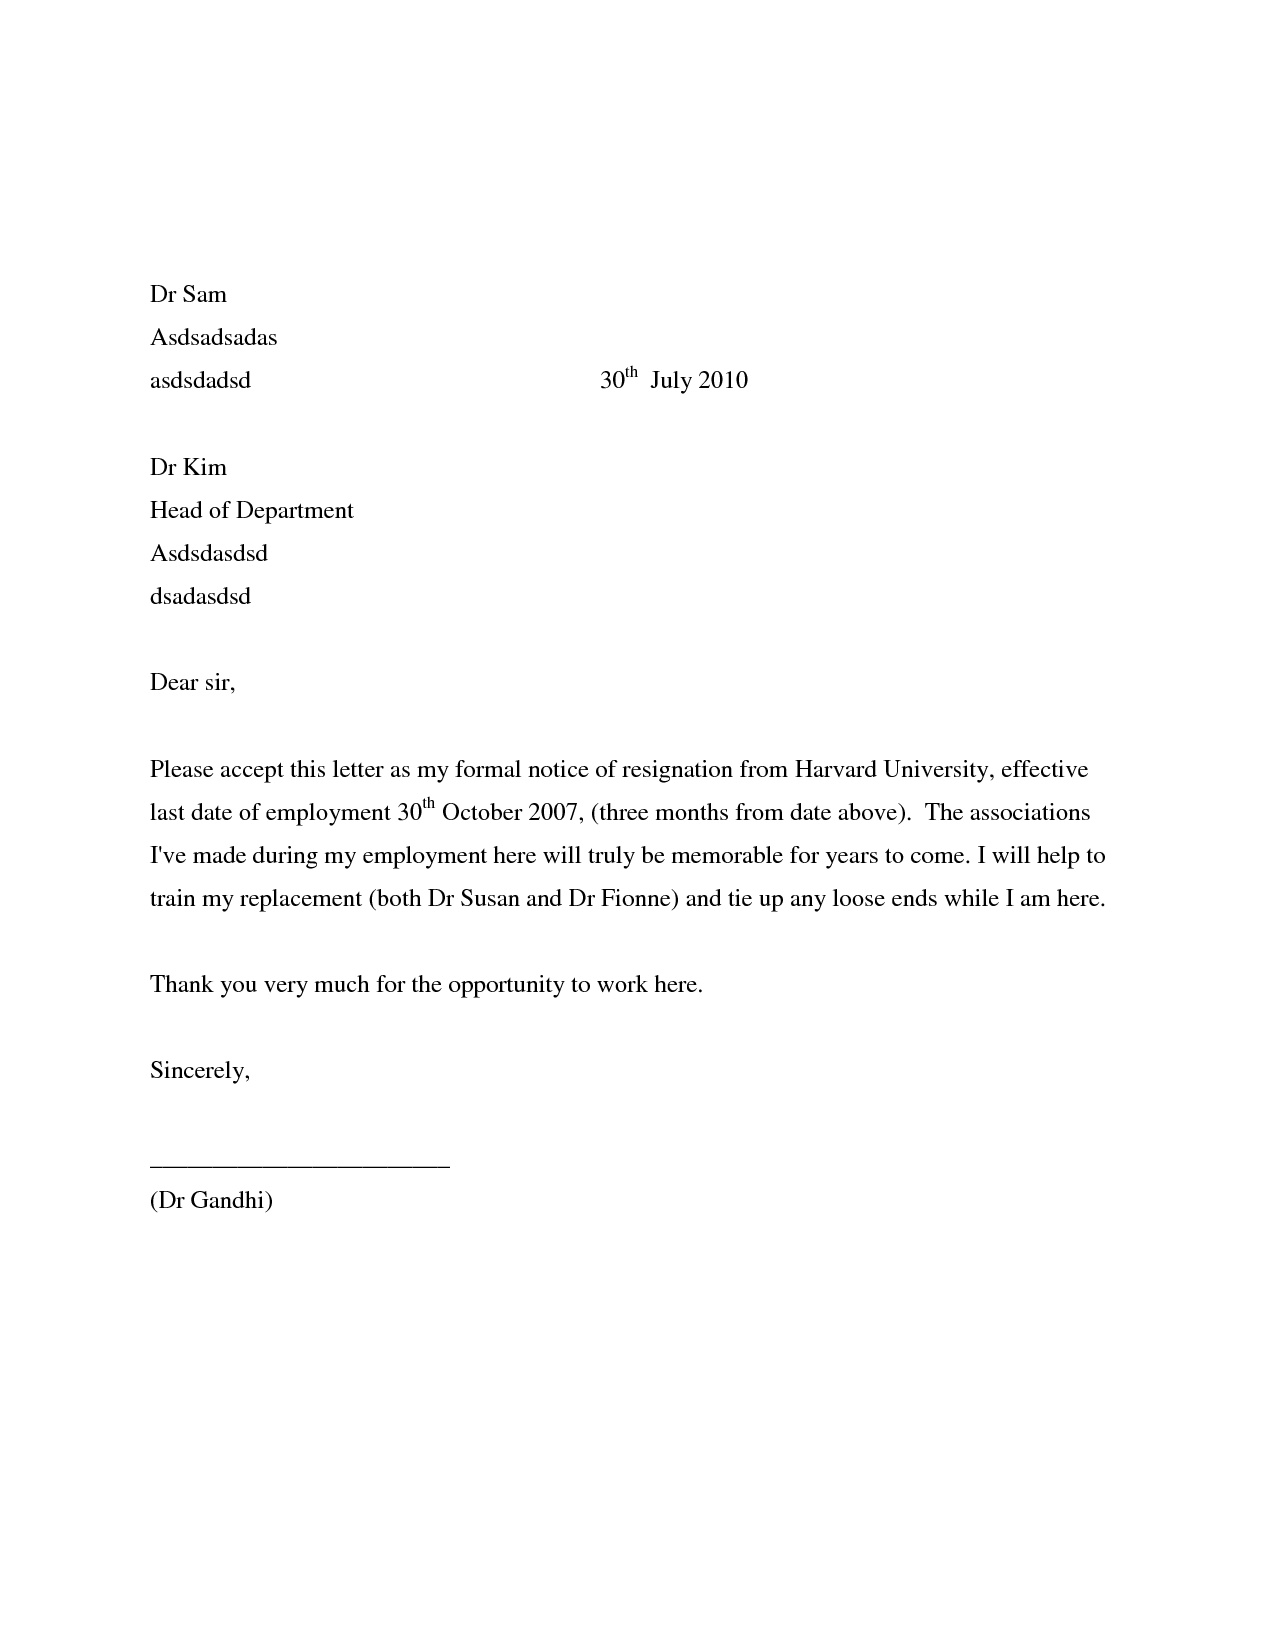 Pin By Template On Template Pinterest Resignation Letter Letter